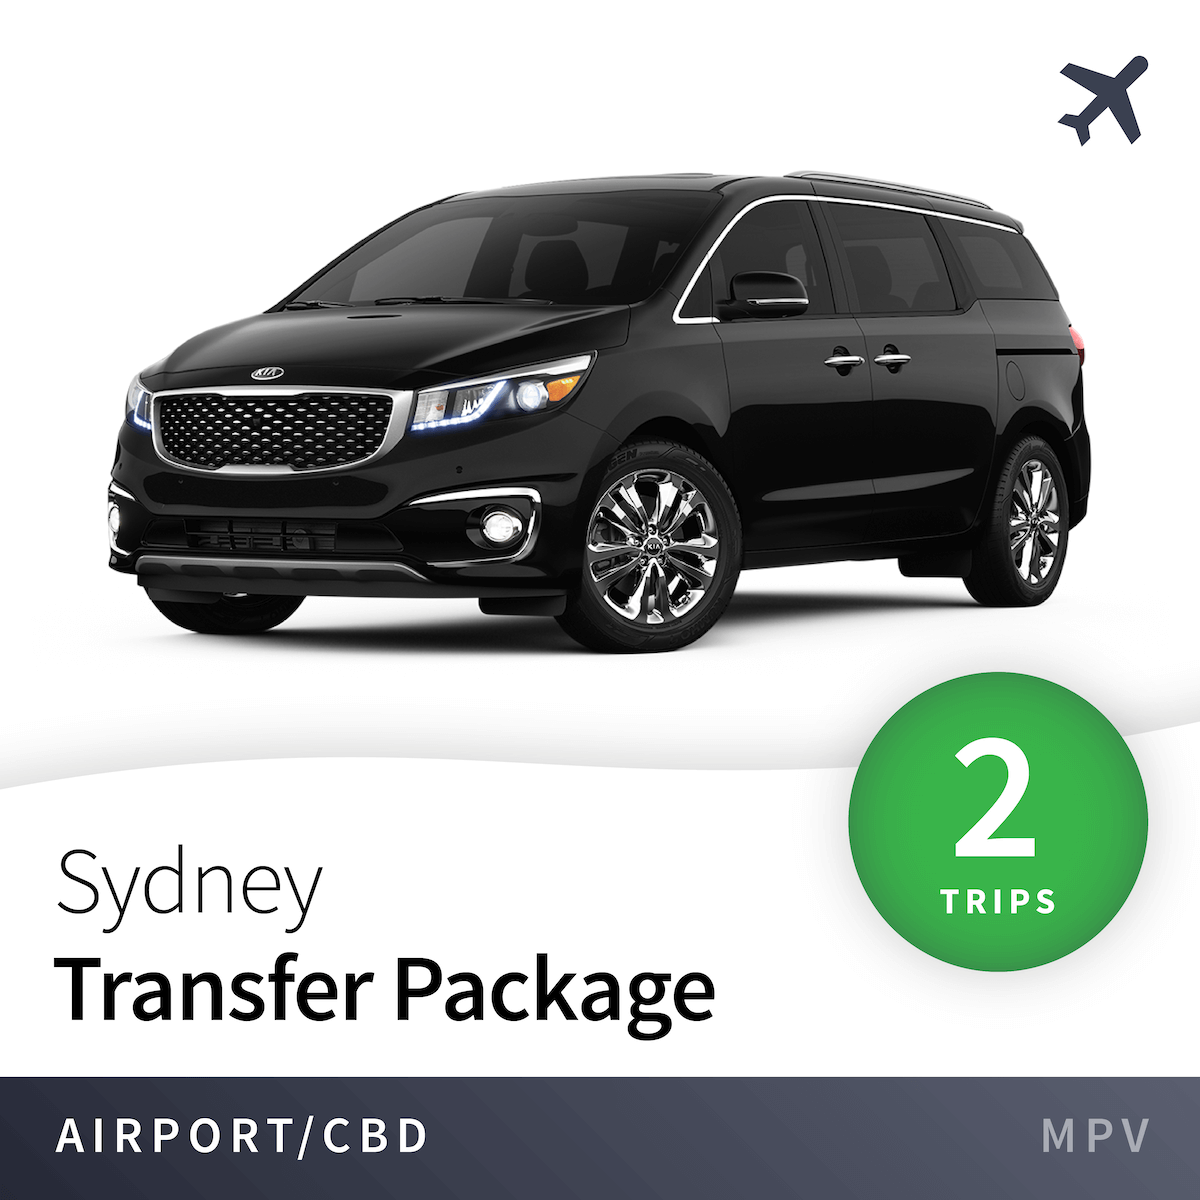 Sydney Airport Transfer Package - MPV (2 Trips) 9